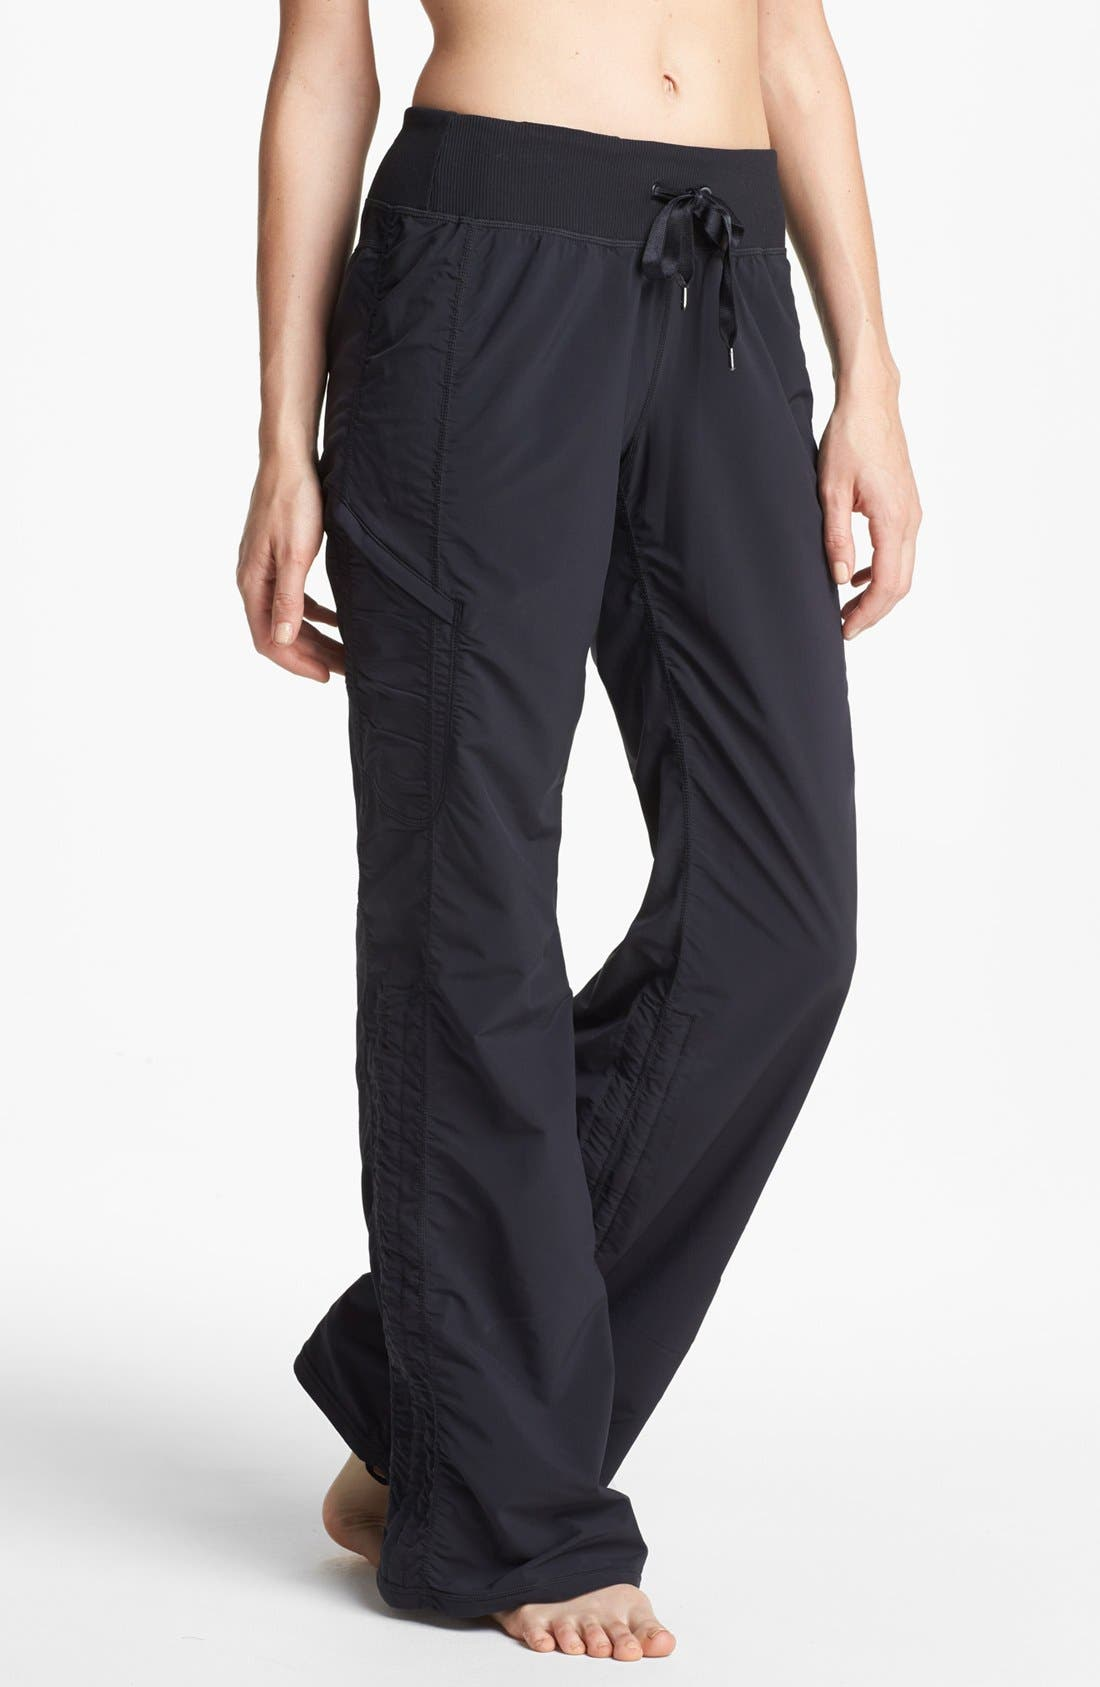 Main Image - Zella 'Move' Pants